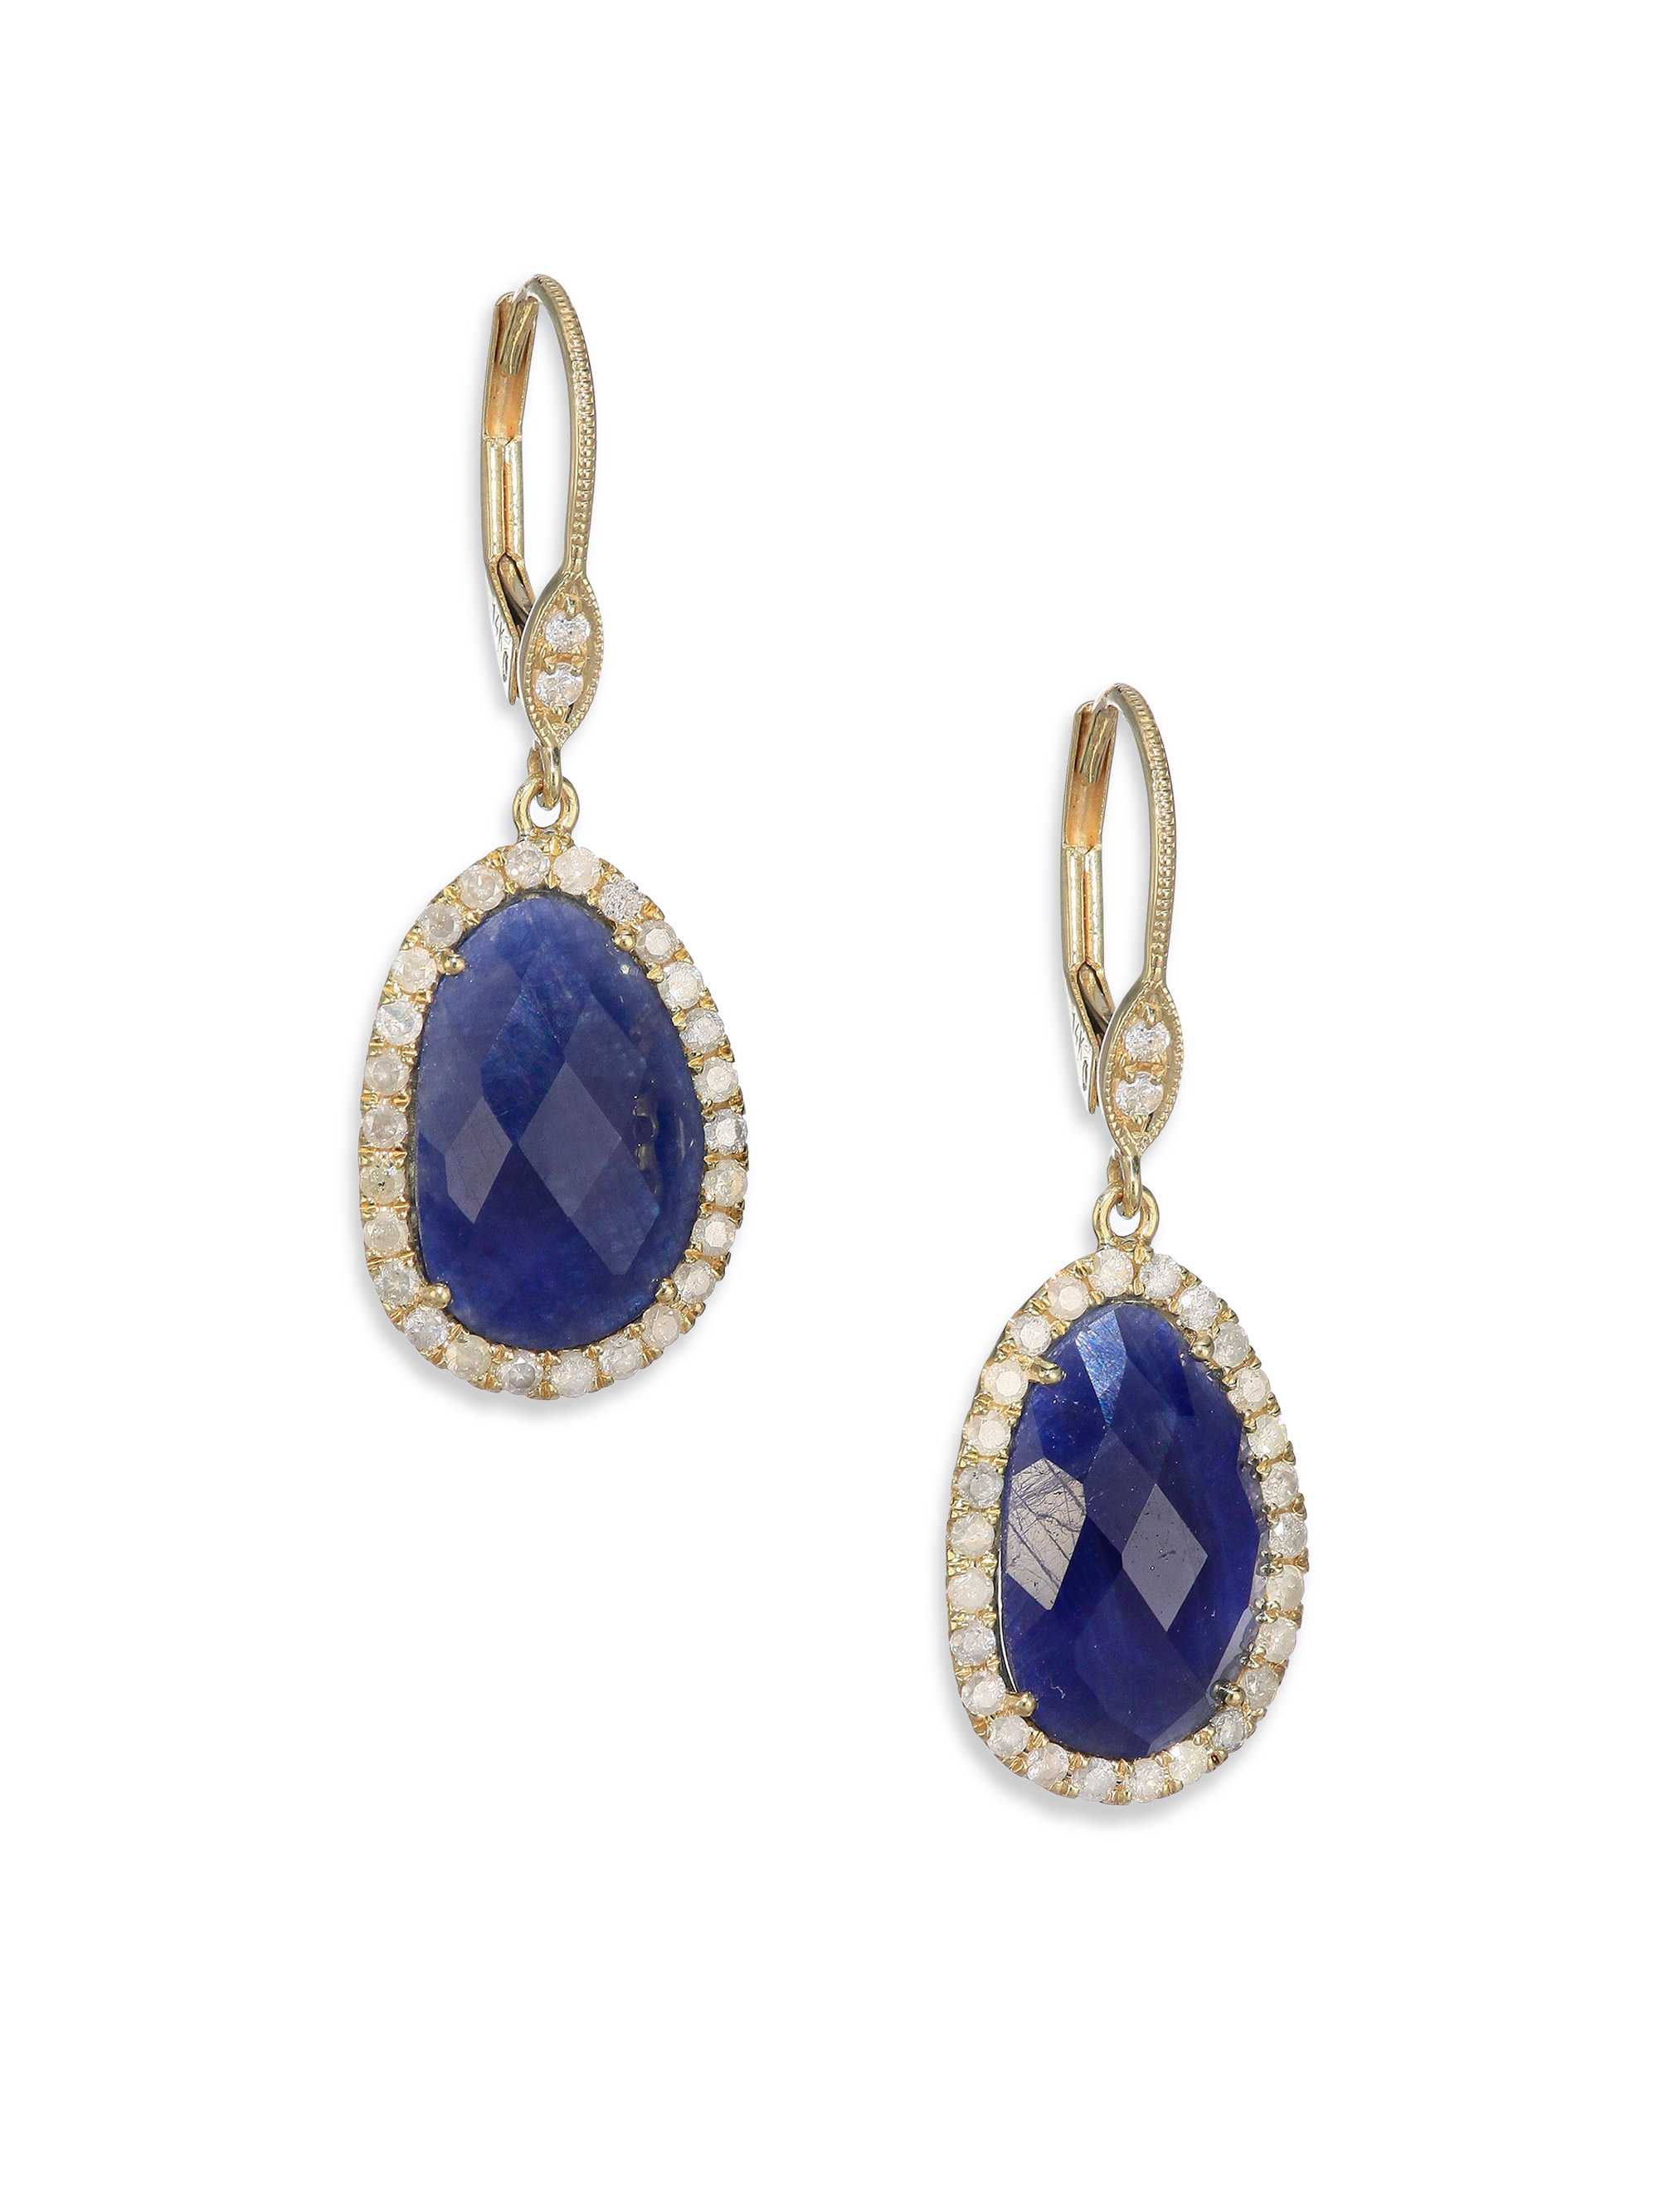 Meira t Sapphire Diamond & 14k Yellow Gold Drop Earrings in Blue